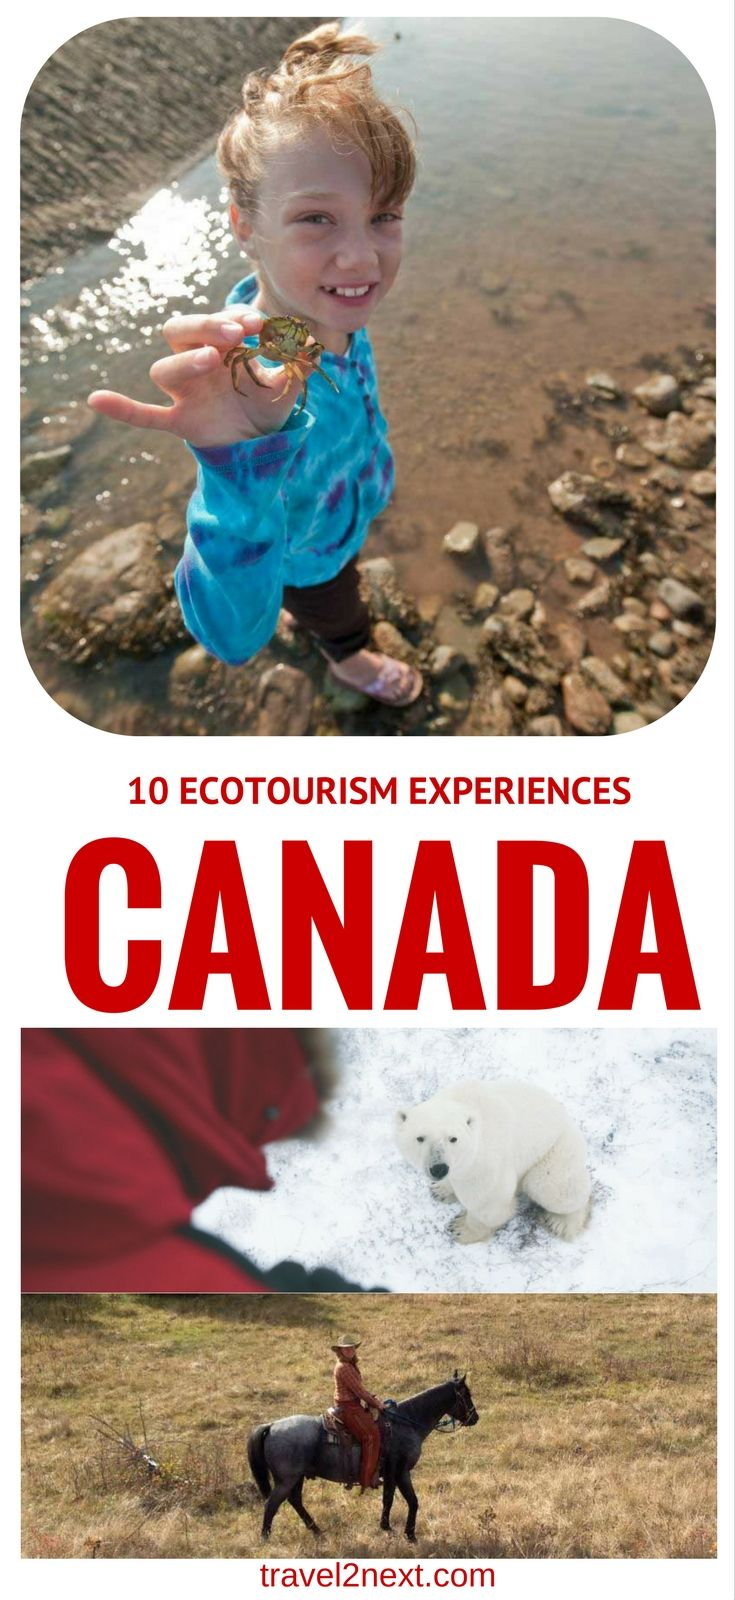 10 ecotourism experiences in Canada. Canada is renowned for its wide-open spaces which offer authentic eco-adventures.